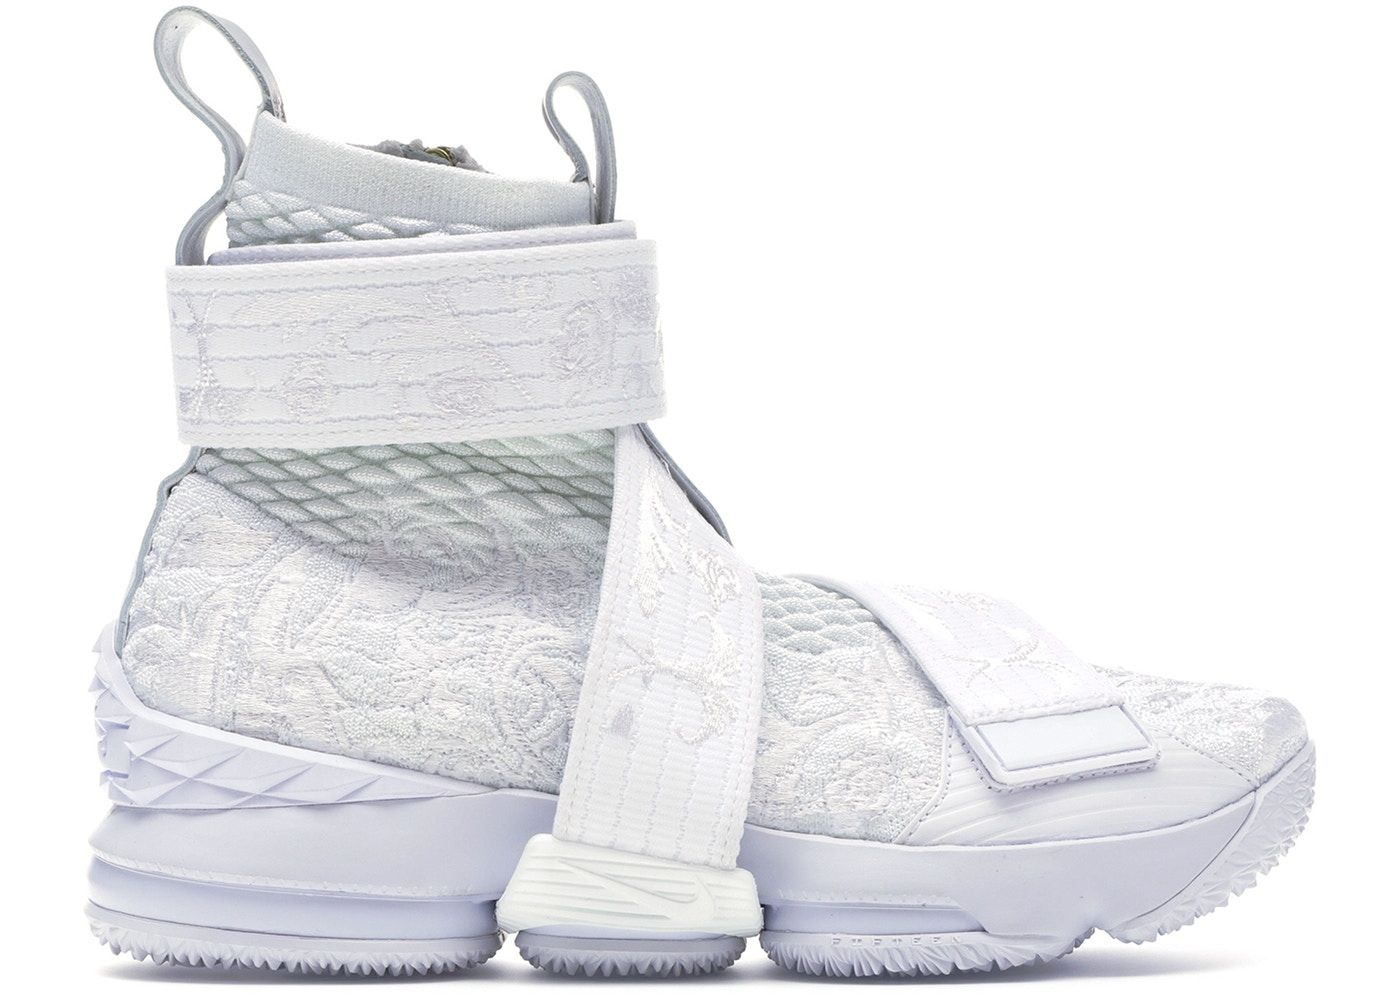 separation shoes e527b f206a LeBron 15 Lifestyle KITH City of Angels in 2019 ...